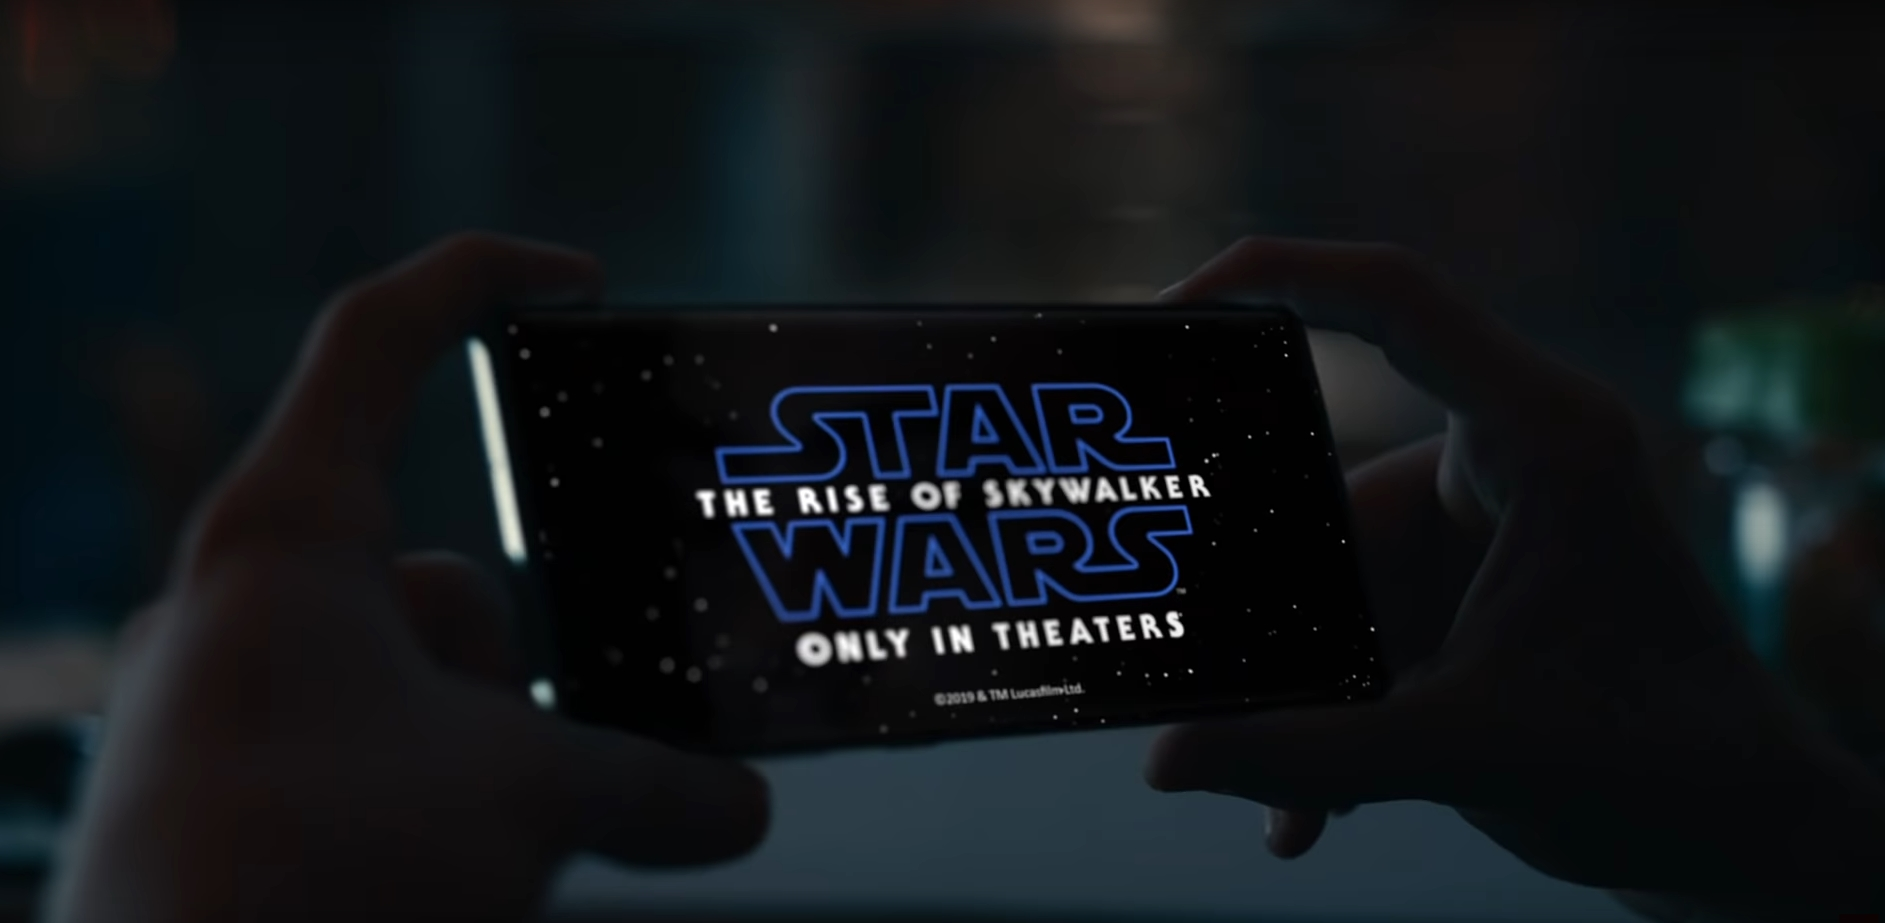 samsung_joins_forces_with_star_wars_for_holiday_collaboration_film_2.jpg